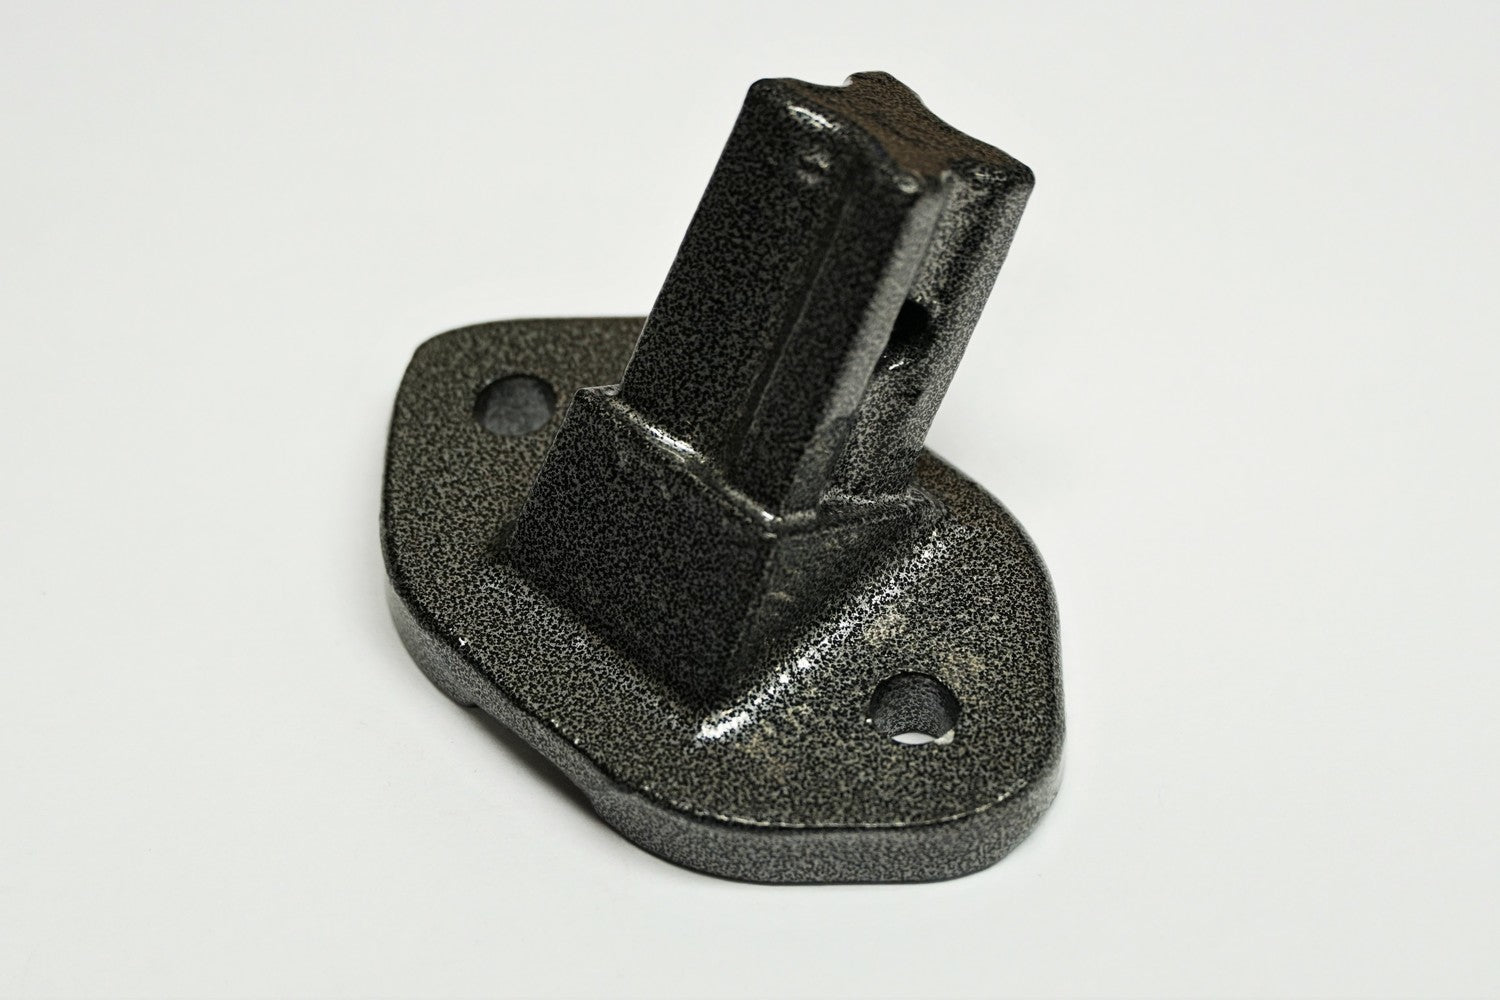 Panther Bolt-on Trailer Bracket - shop.cmpgroup.net